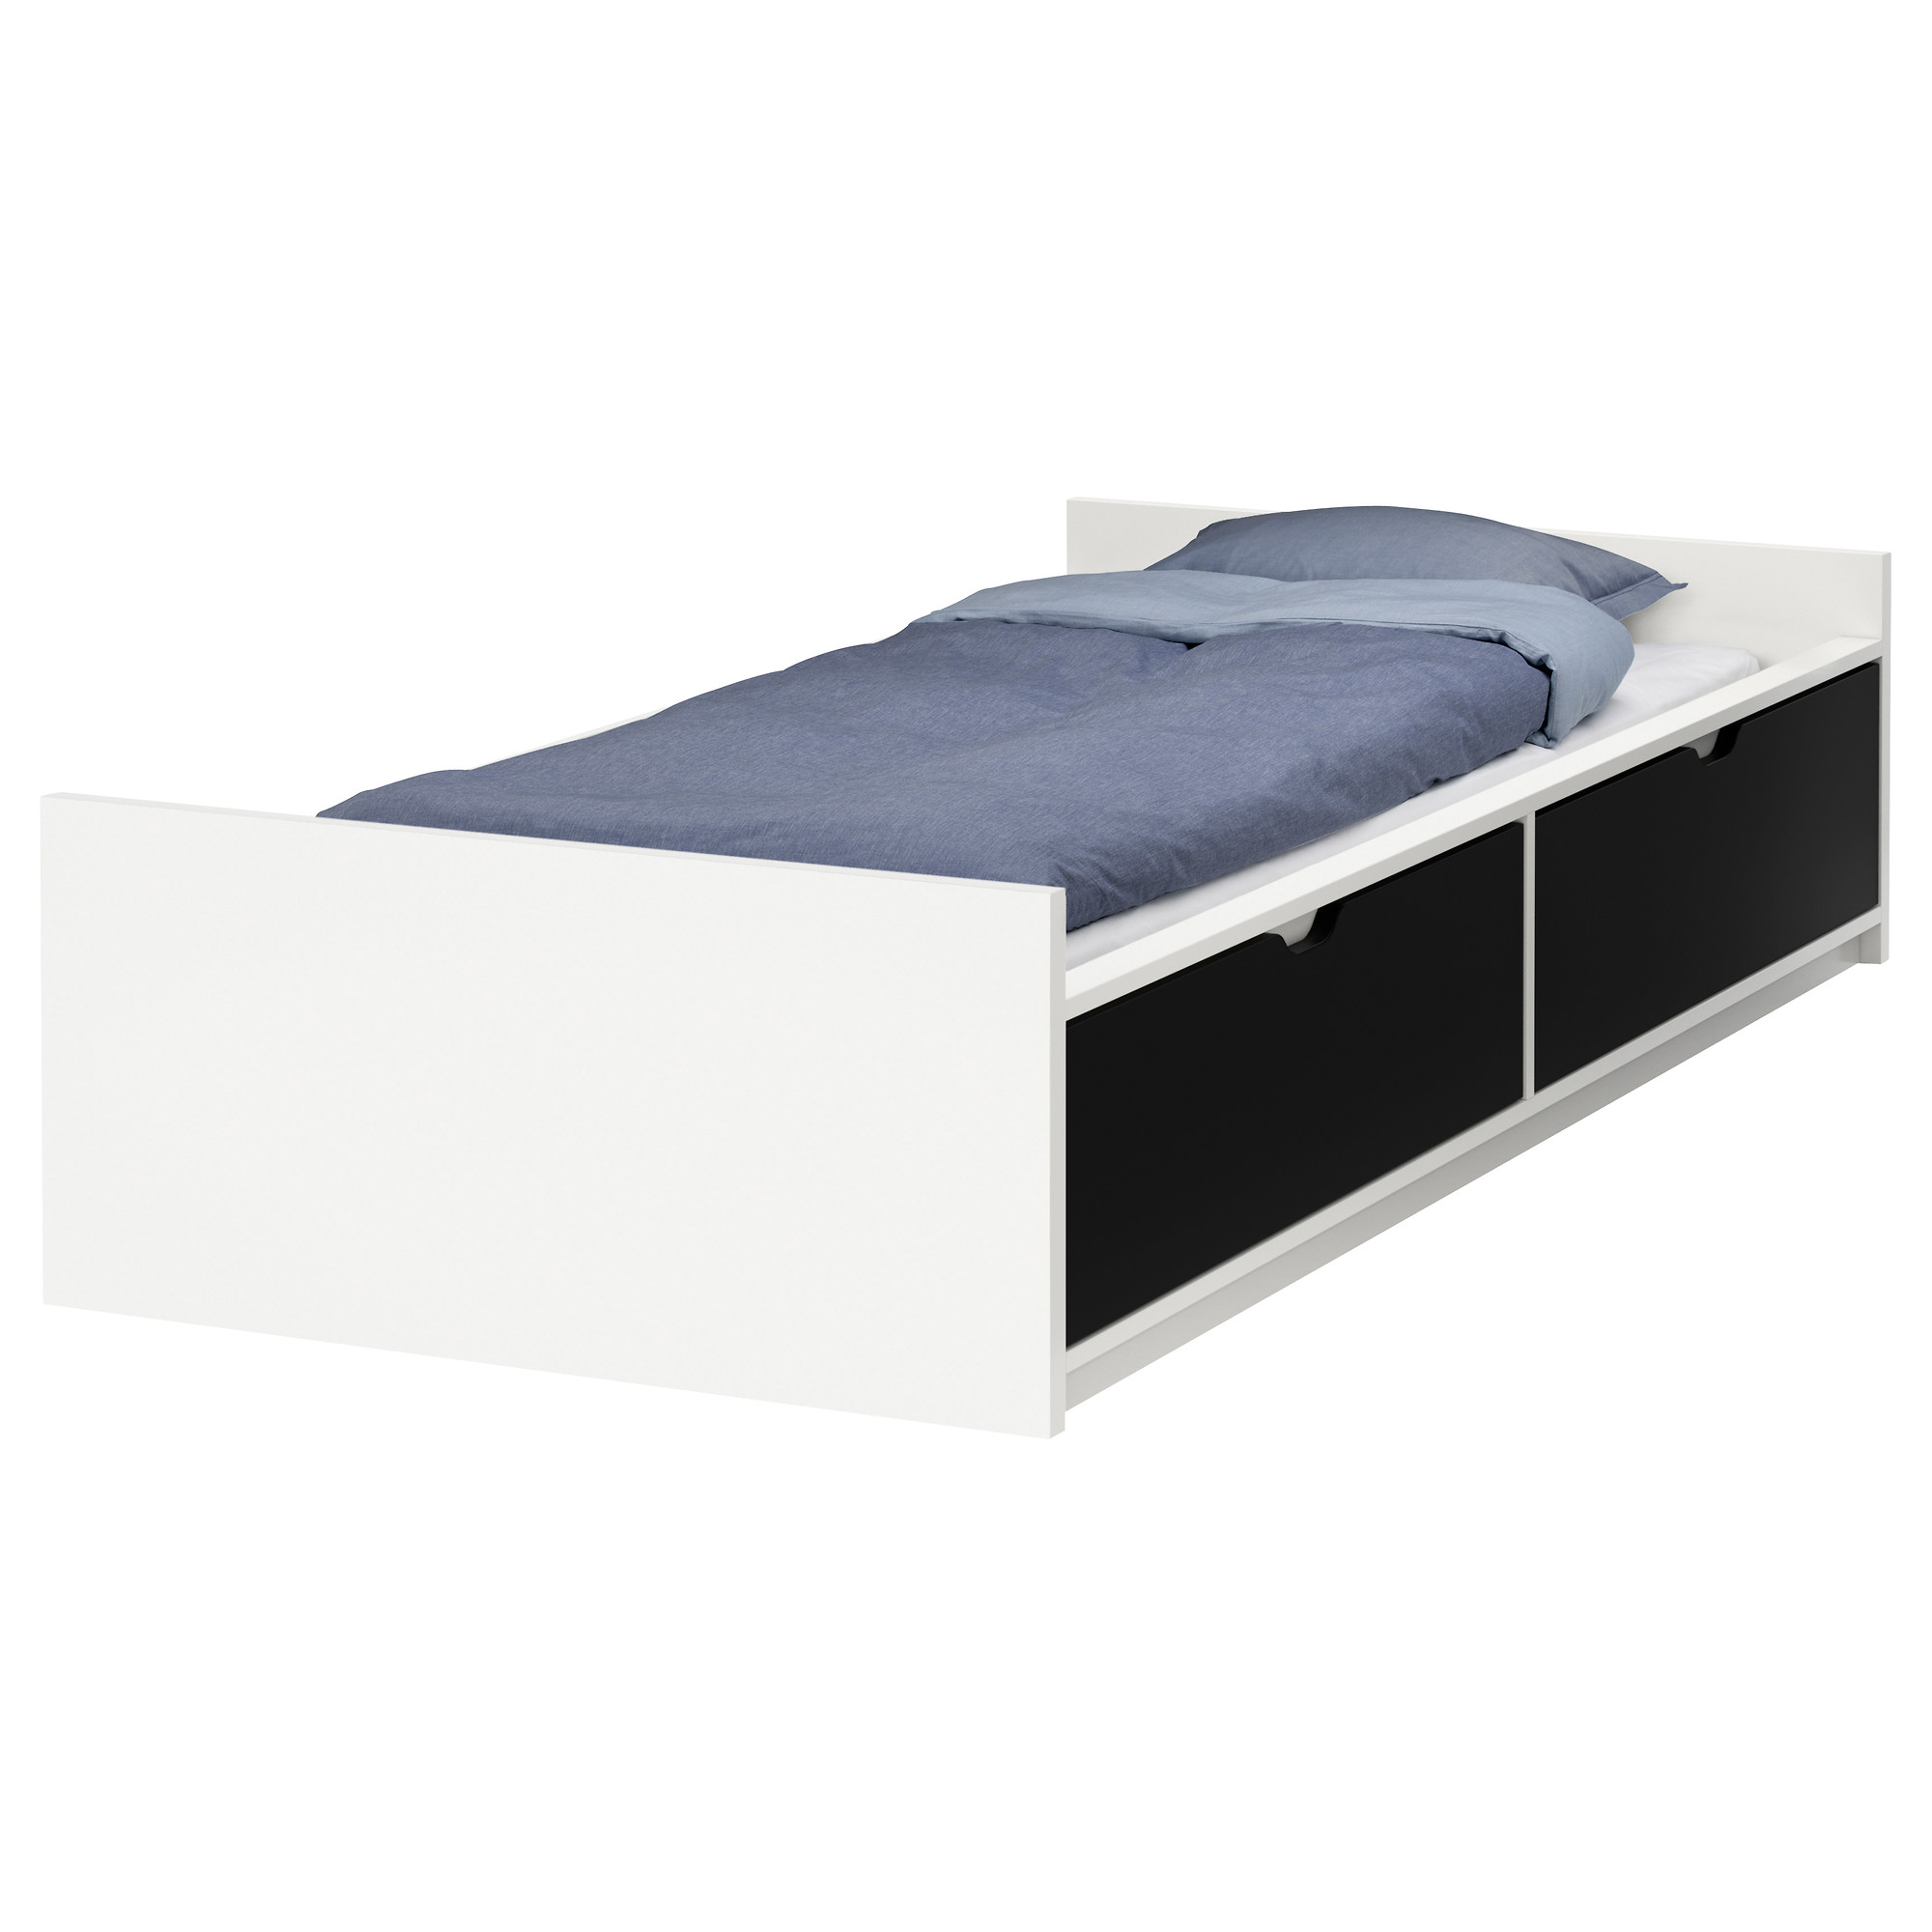 wonderful twin xl bed frame ikea homesfeed. Black Bedroom Furniture Sets. Home Design Ideas